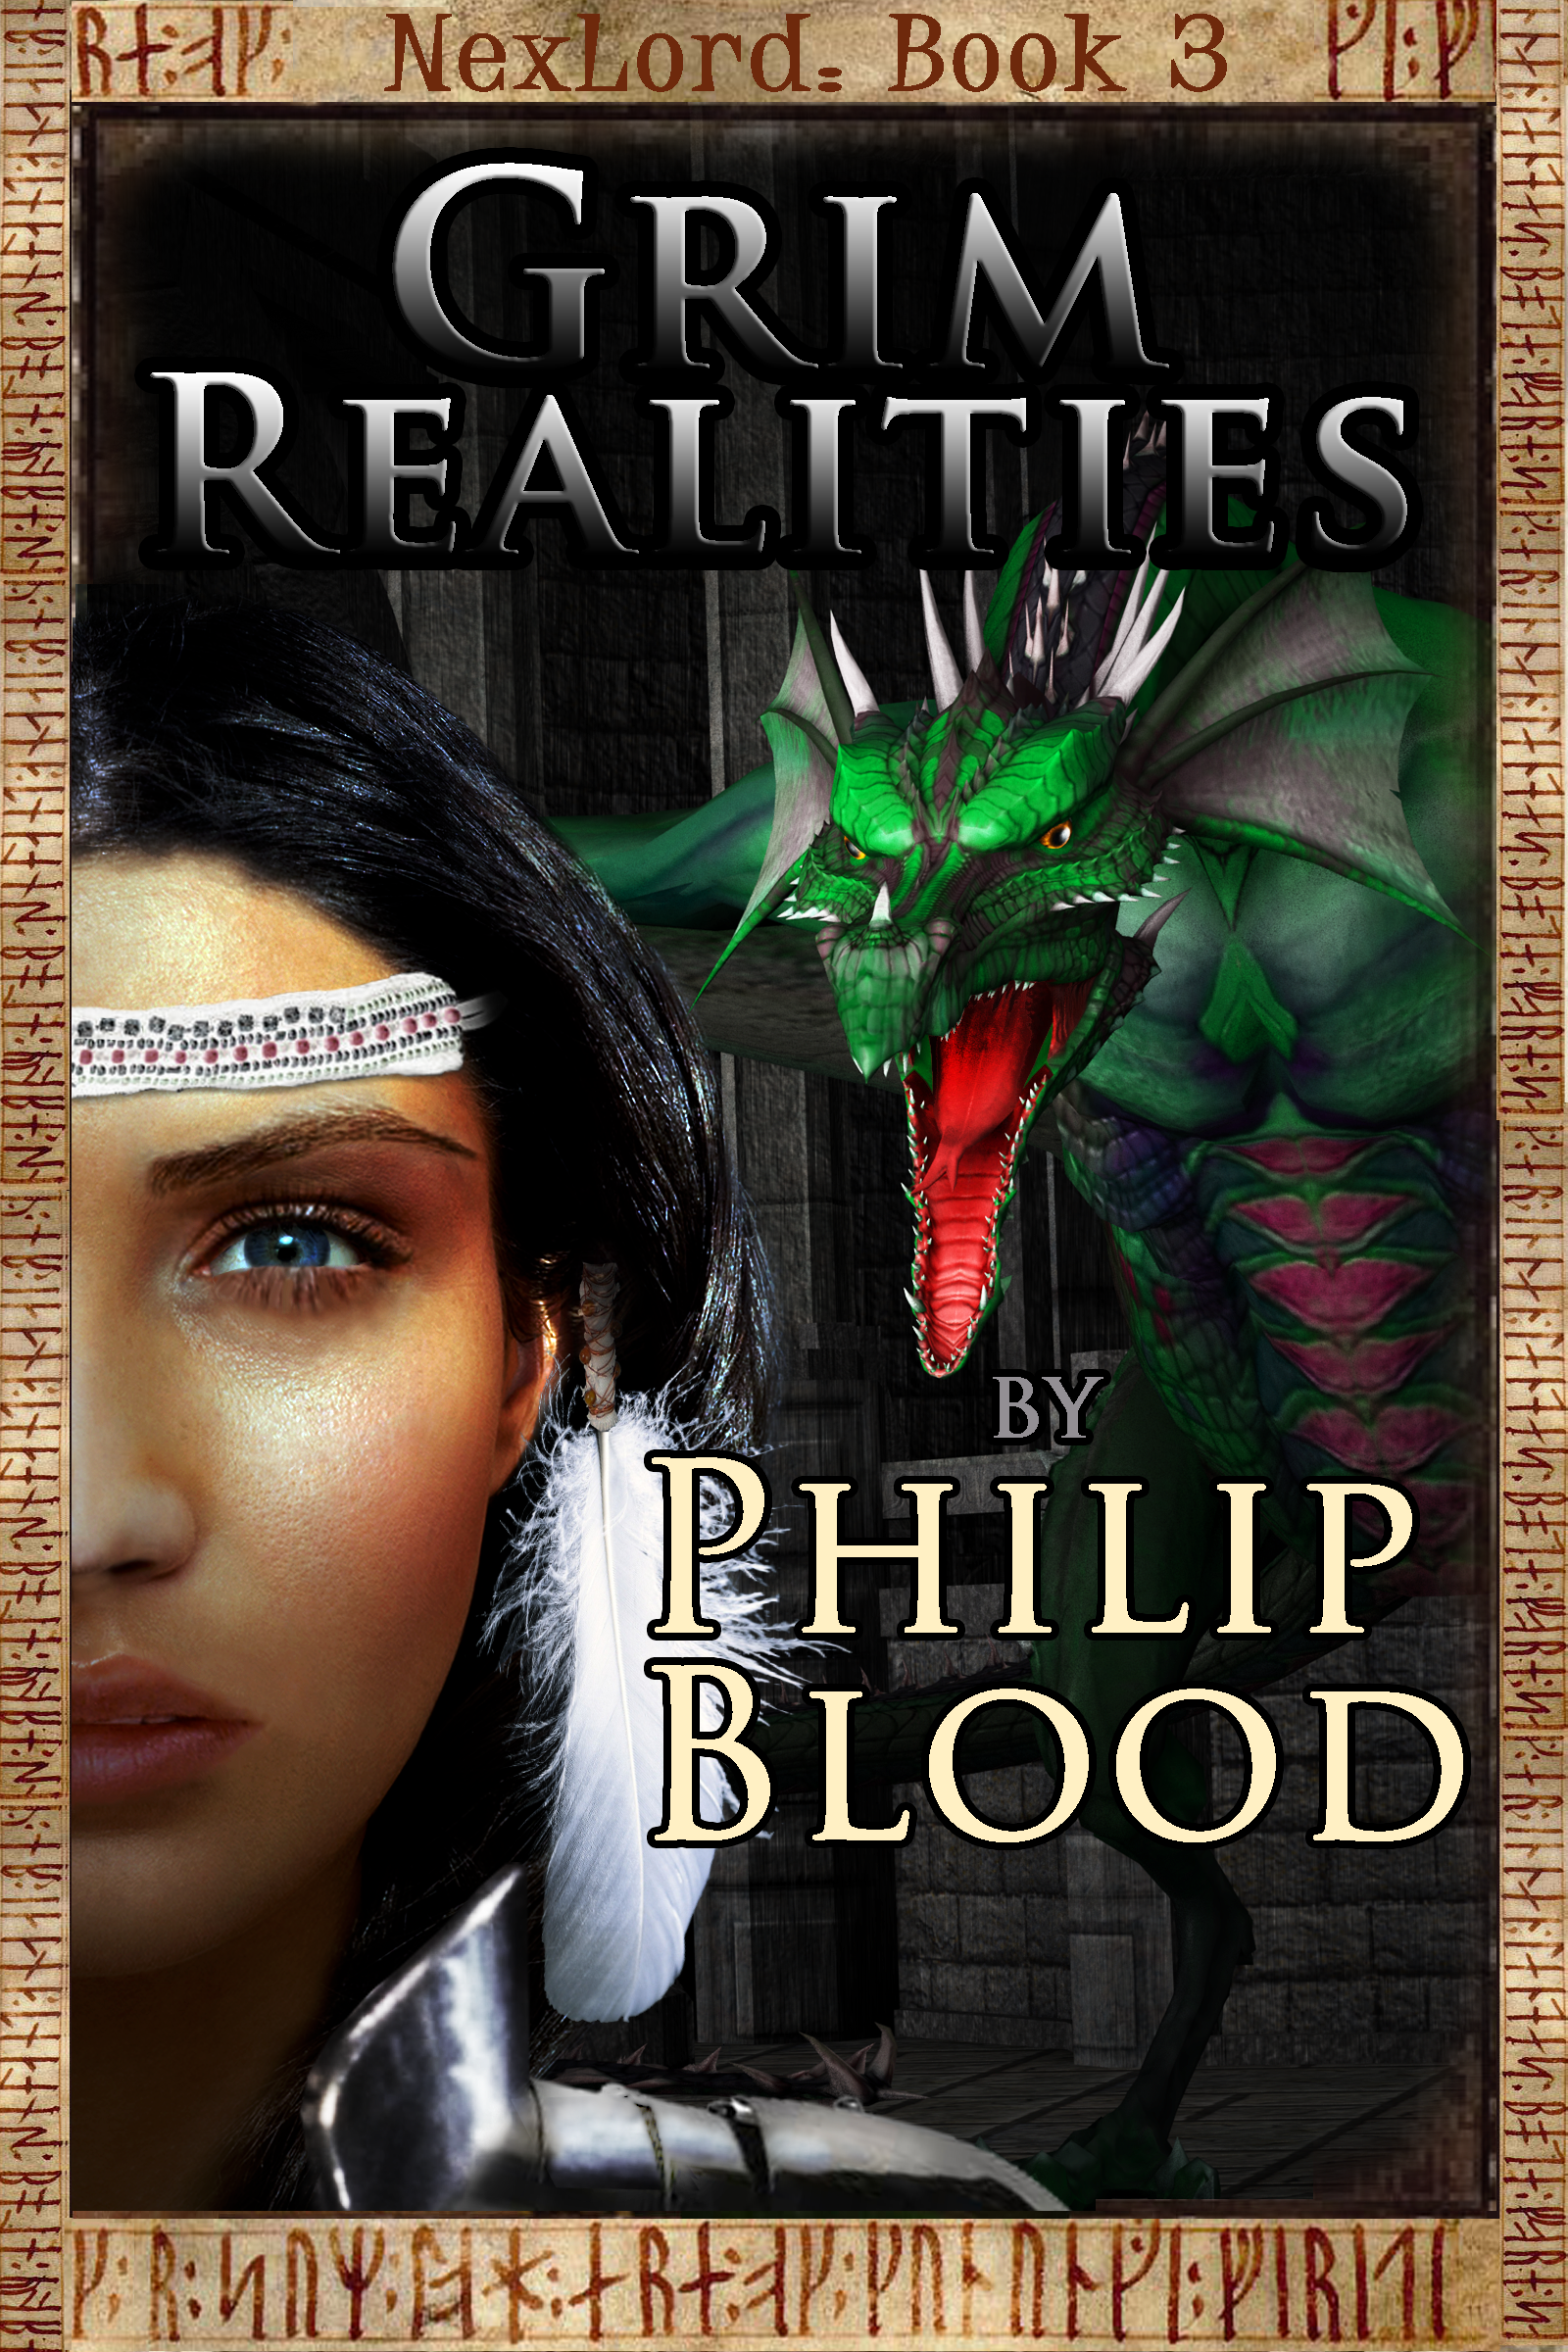 Realities Book 3 Nexlord